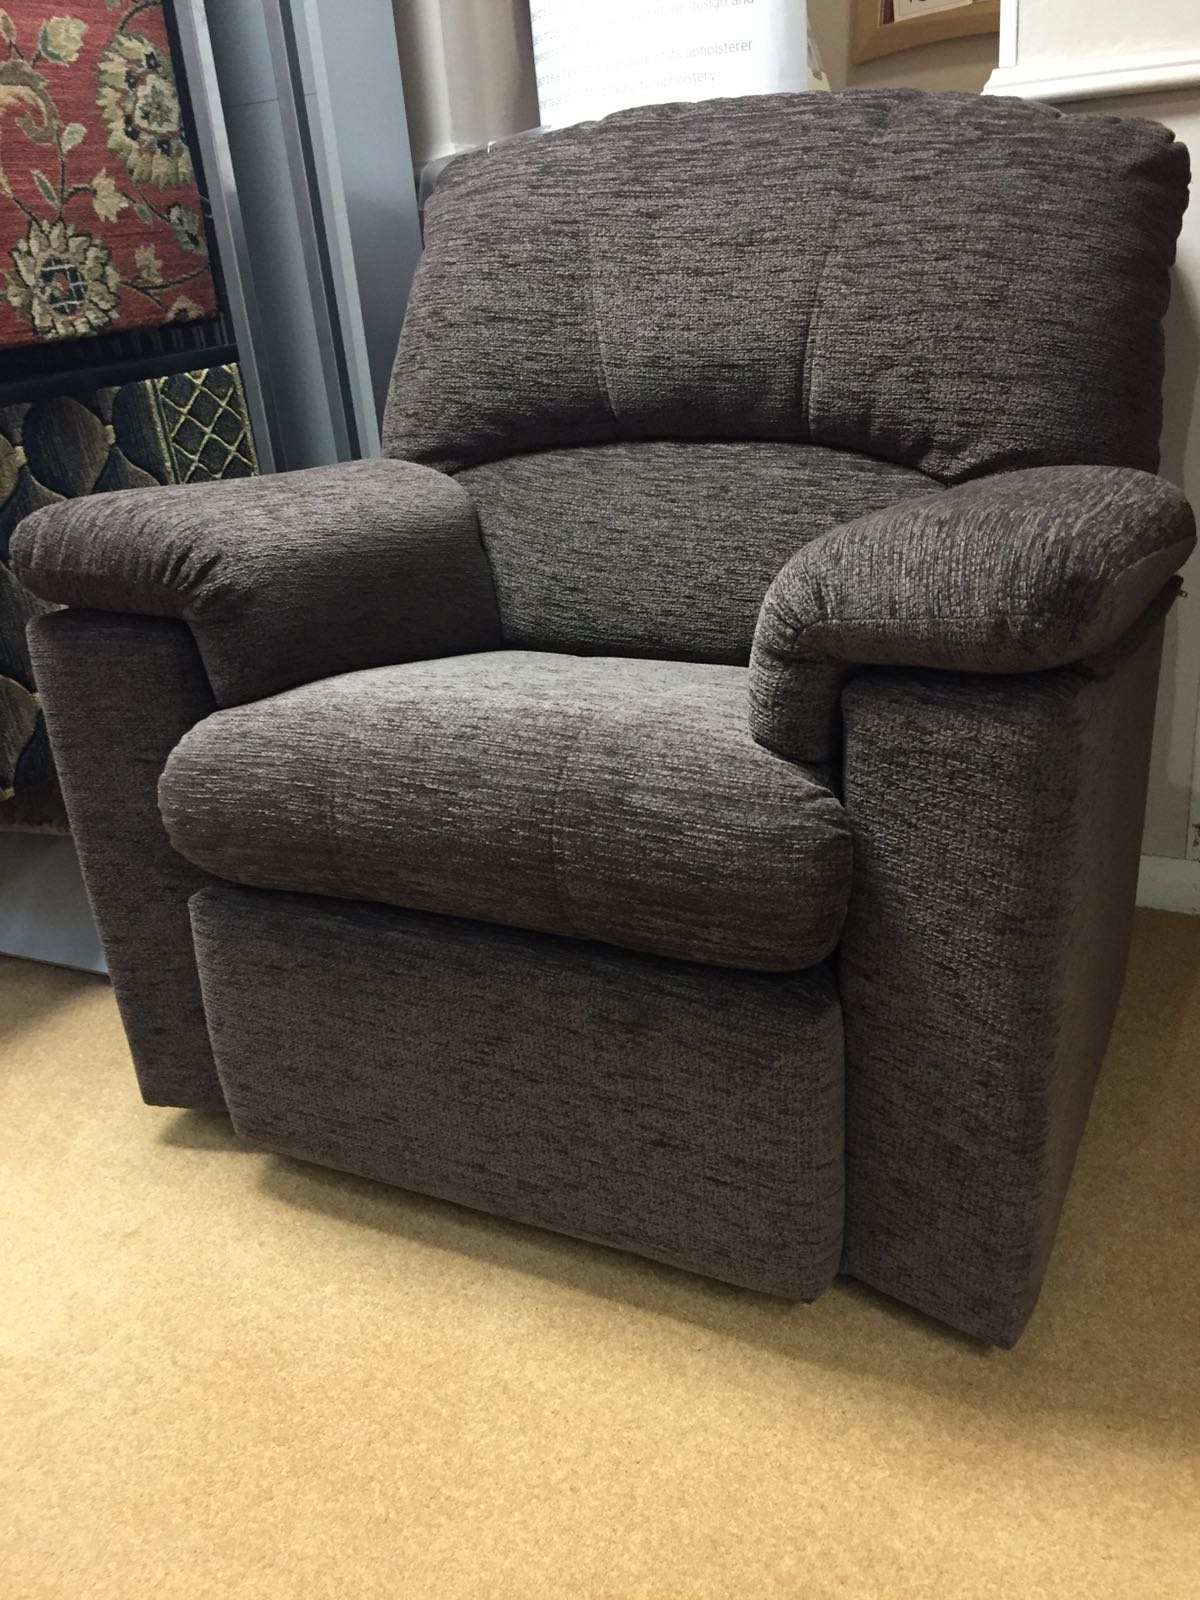 Gplan Chloe Chair Was 163 914 00 Now 163 457 00 Caprice